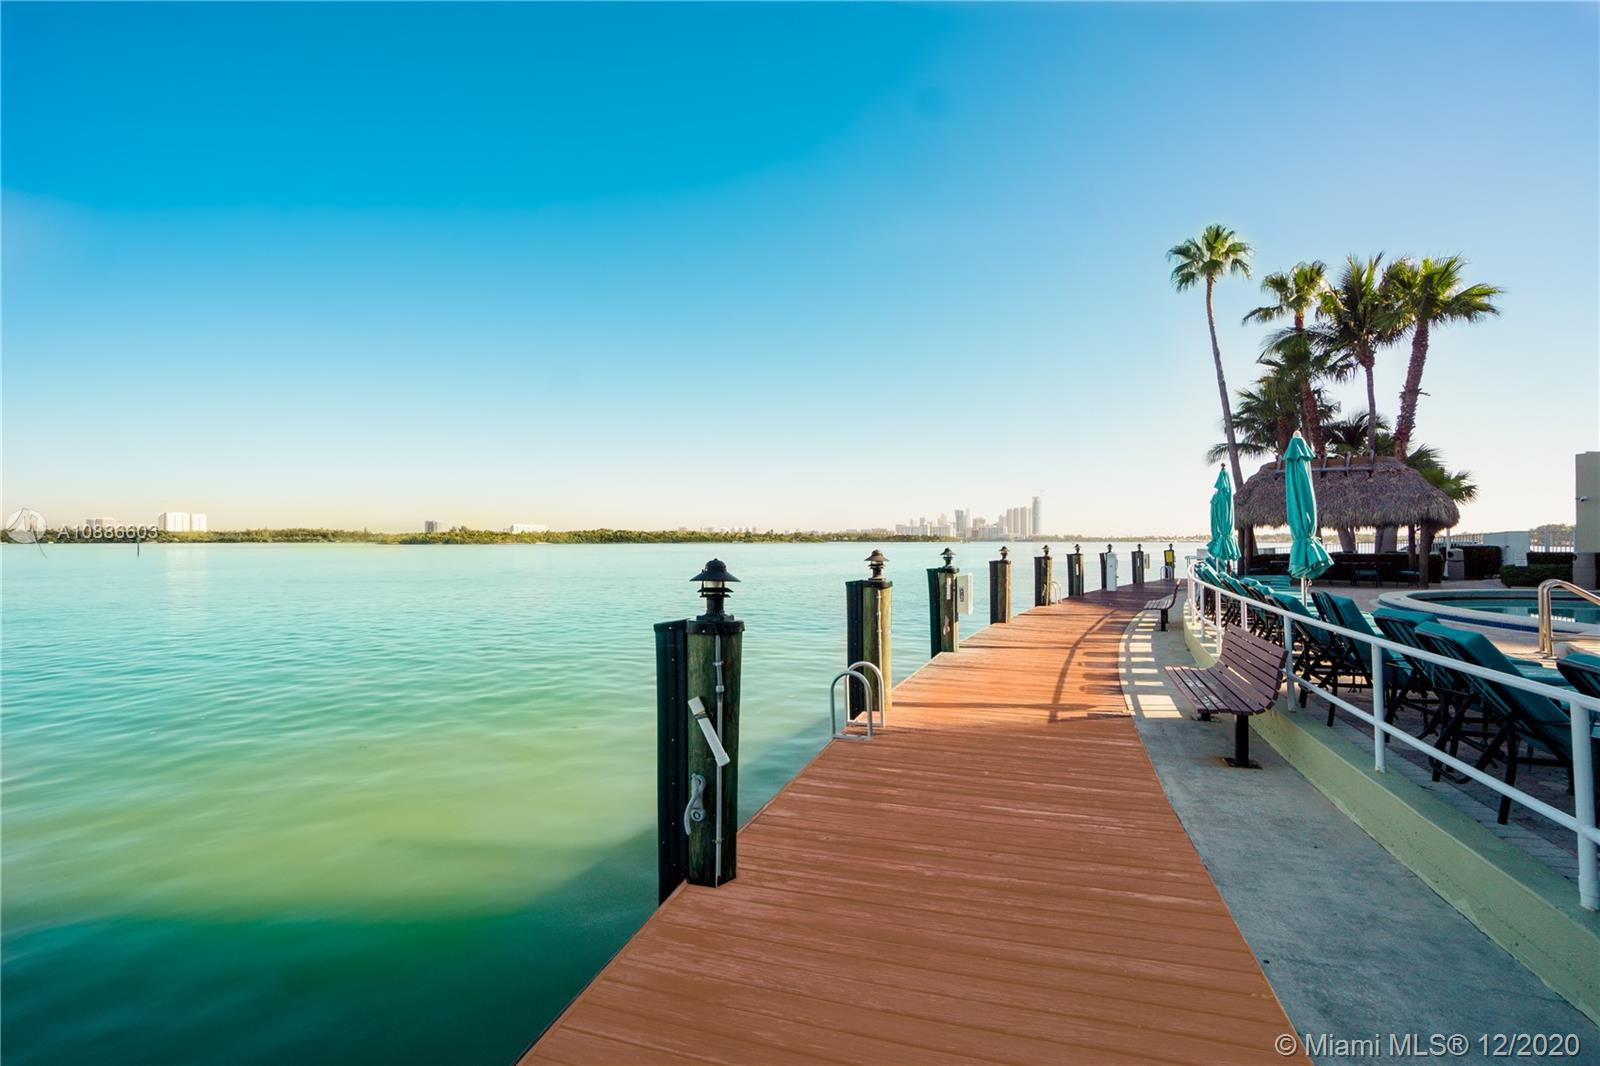 """MUST SEE- Boater DREAM HOME- Available Dock or you can build your own lift. One of the largest units with 1900 SQFT overlooking the turquoise watercolor combined with Miami Beach Skyline the minute you open the door of the apartment. The beautiful master bedroom(same size of the living room) with a master walking closet. Two balconies to enjoy the evening watching the water (one of them in the privacy of your room!). The heated pool overlooks the Bay with The Kikis and BBQ to enjoy """"Asado"""" with your friends. You paddleboard or take your boat just from your own backyard to the Sand BAR. 10 mins from the Beach.Walking distance from school... The kids go walking alone, with police in the corners and help to cross the nearby streets.  Enjoy this piece of paradise -SELLER MOTIVATED"""